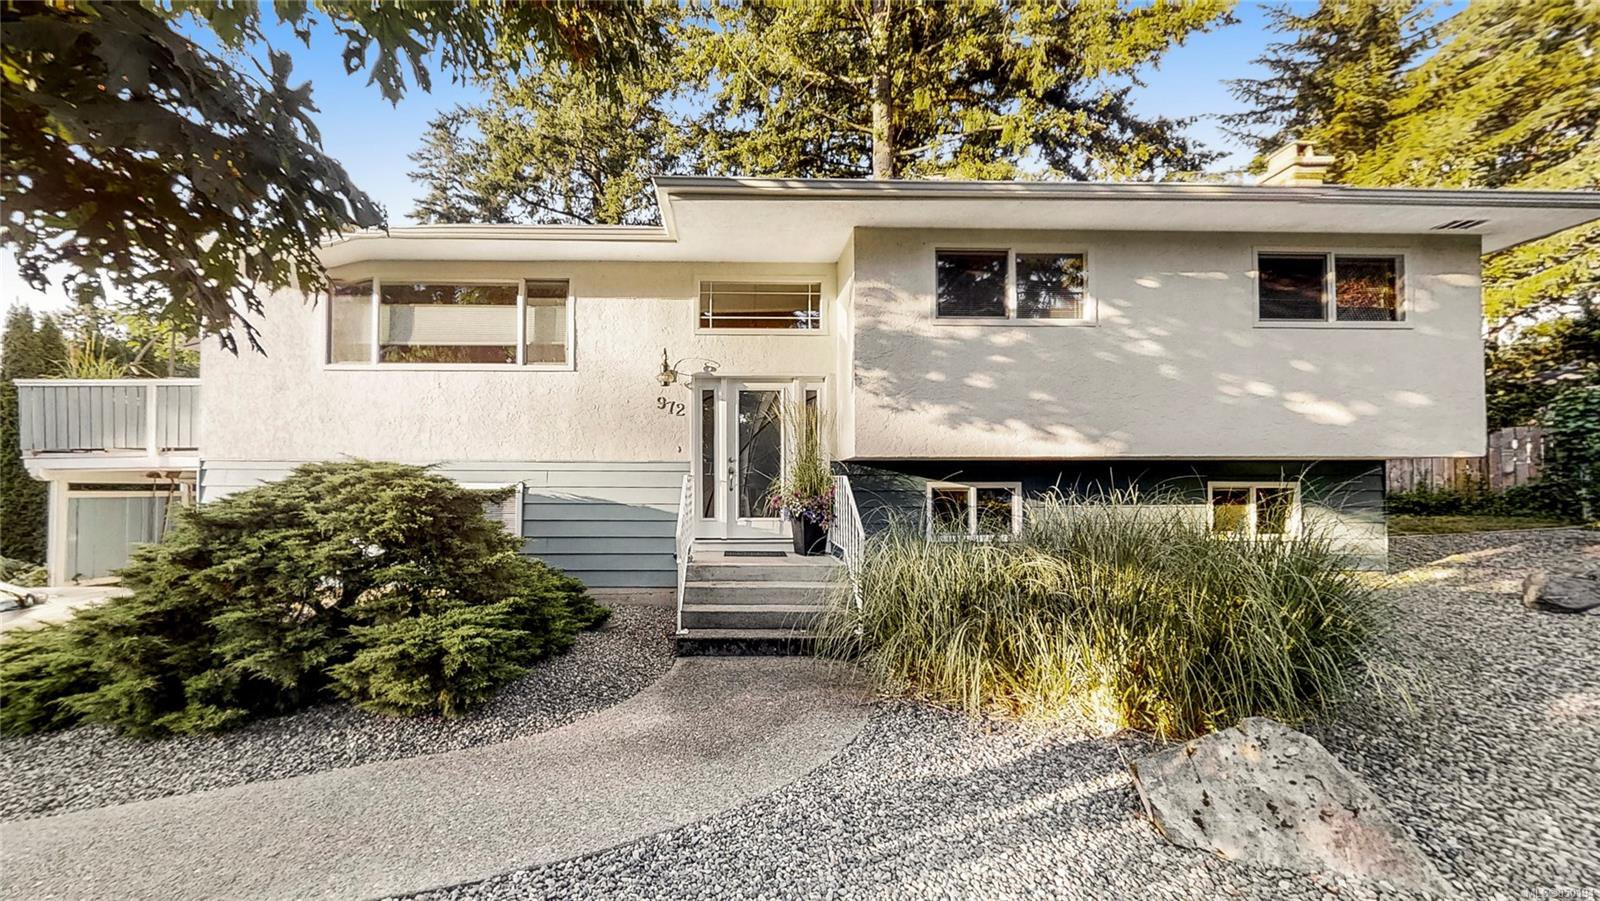 Main Photo: 972 Peggy Anne Cres in : CS Brentwood Bay Single Family Detached for sale (Central Saanich)  : MLS®# 850194